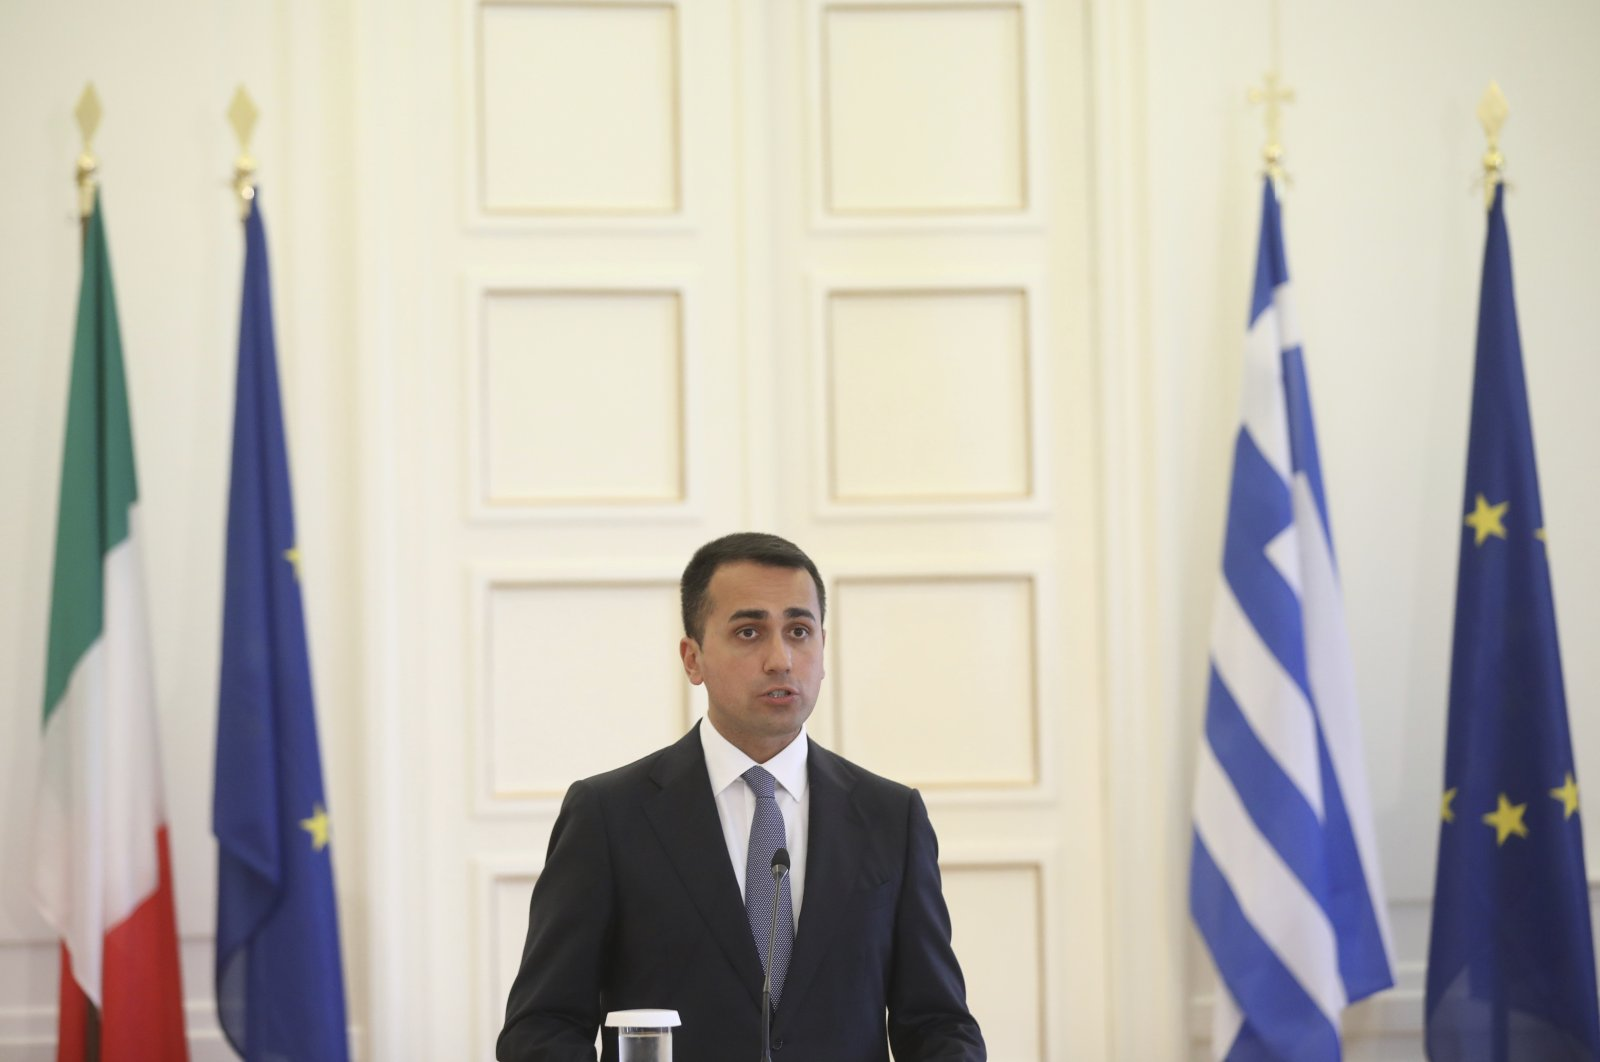 Italian Foreign Minister Luigi Di Maio speaks during a news conference and after his meeting with his Greek counterpart Nikos Dendias in Athens, June 9, 2020. (AP Photo)